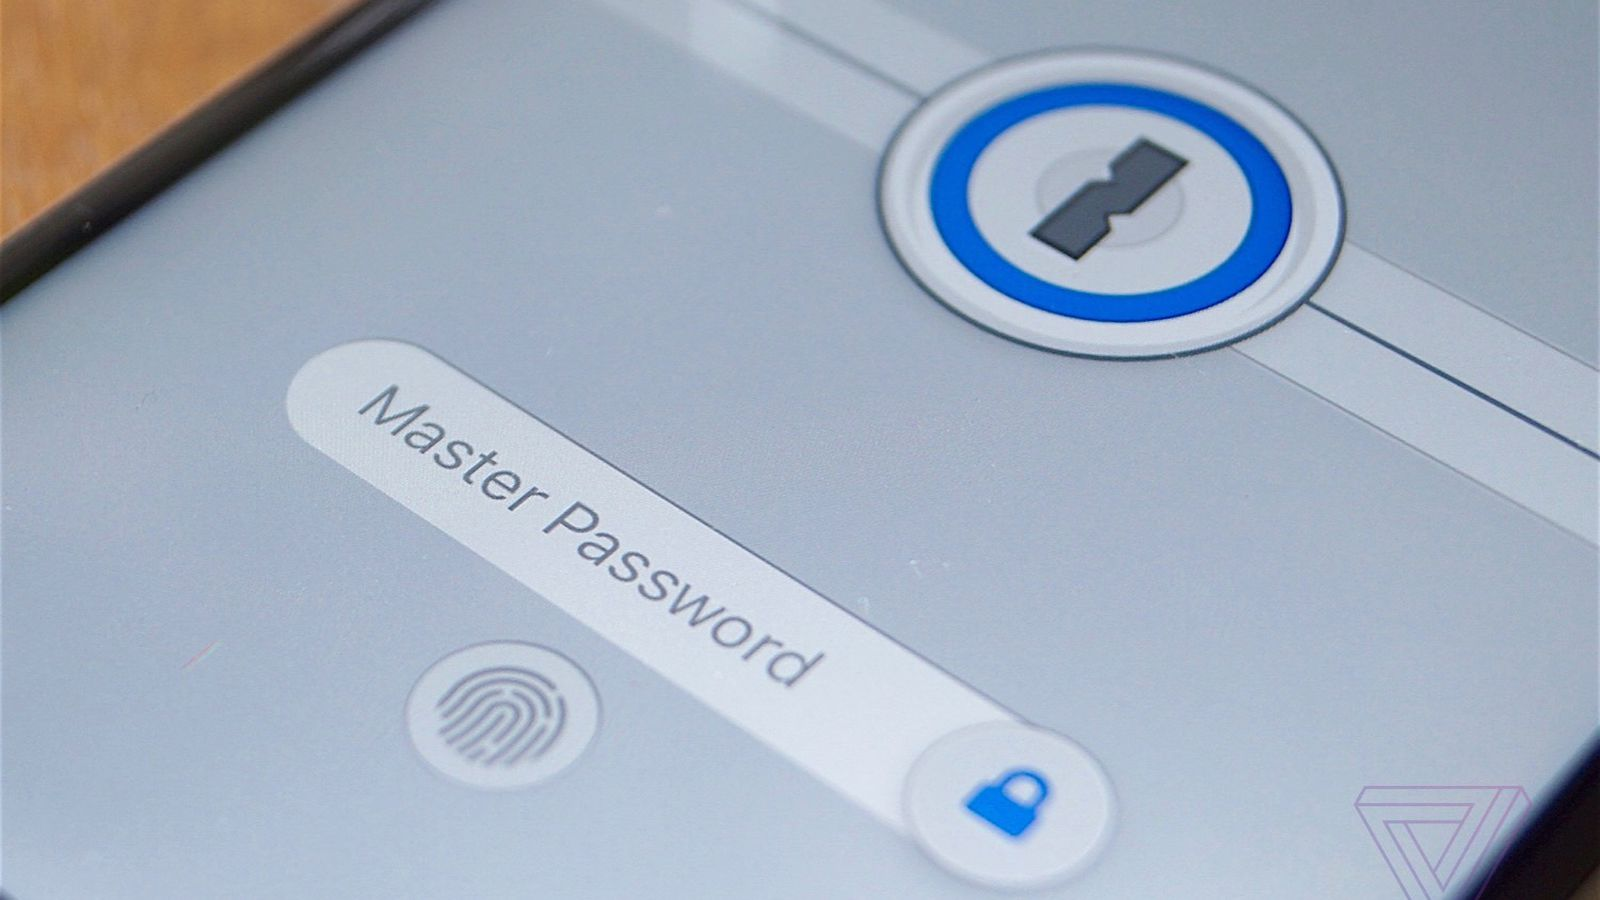 theverge.com - How to use a password manager (and why you really should)